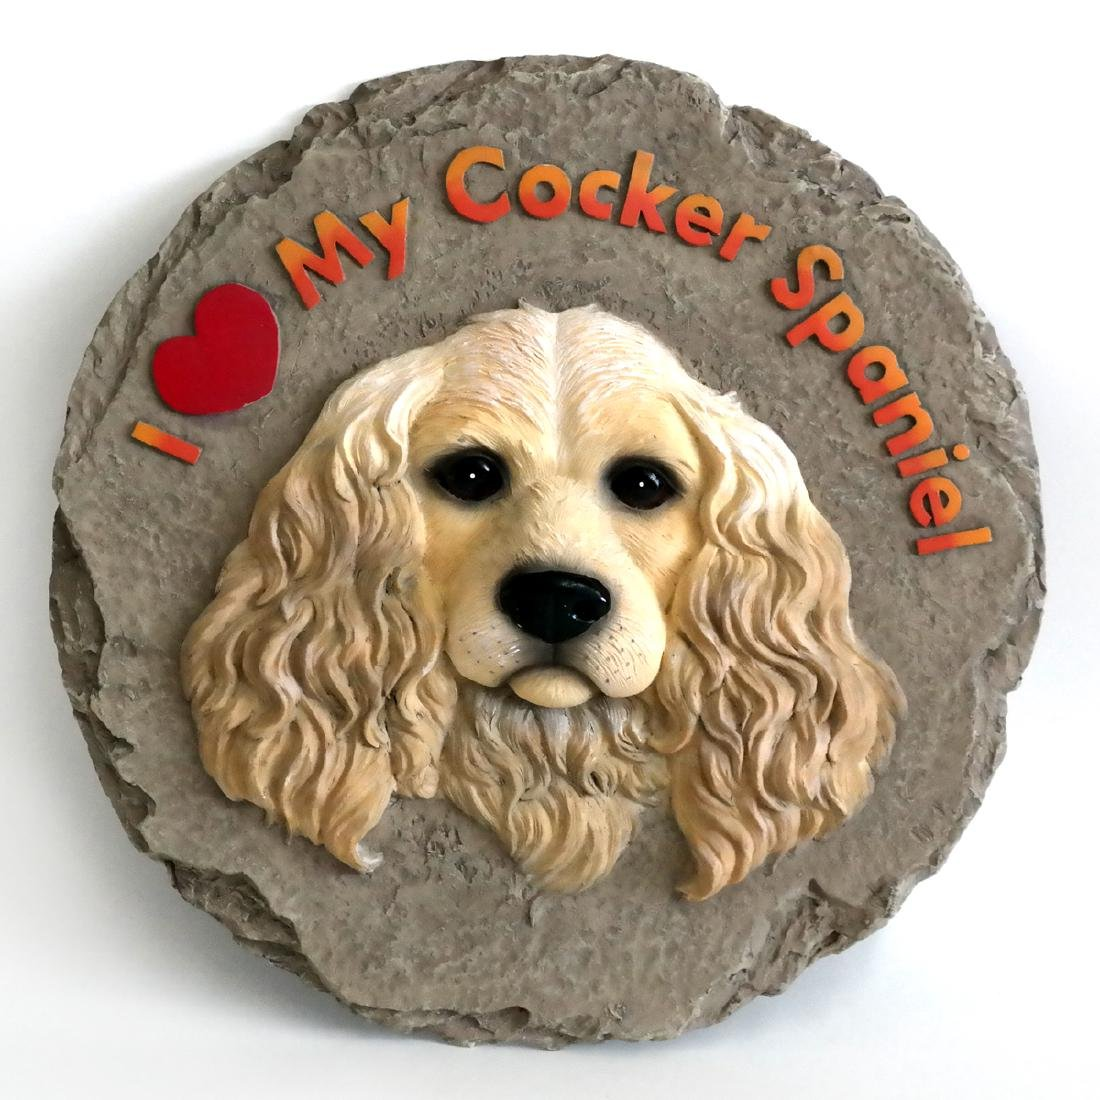 Cocker Spaniel stepping stone wall plaque, signed